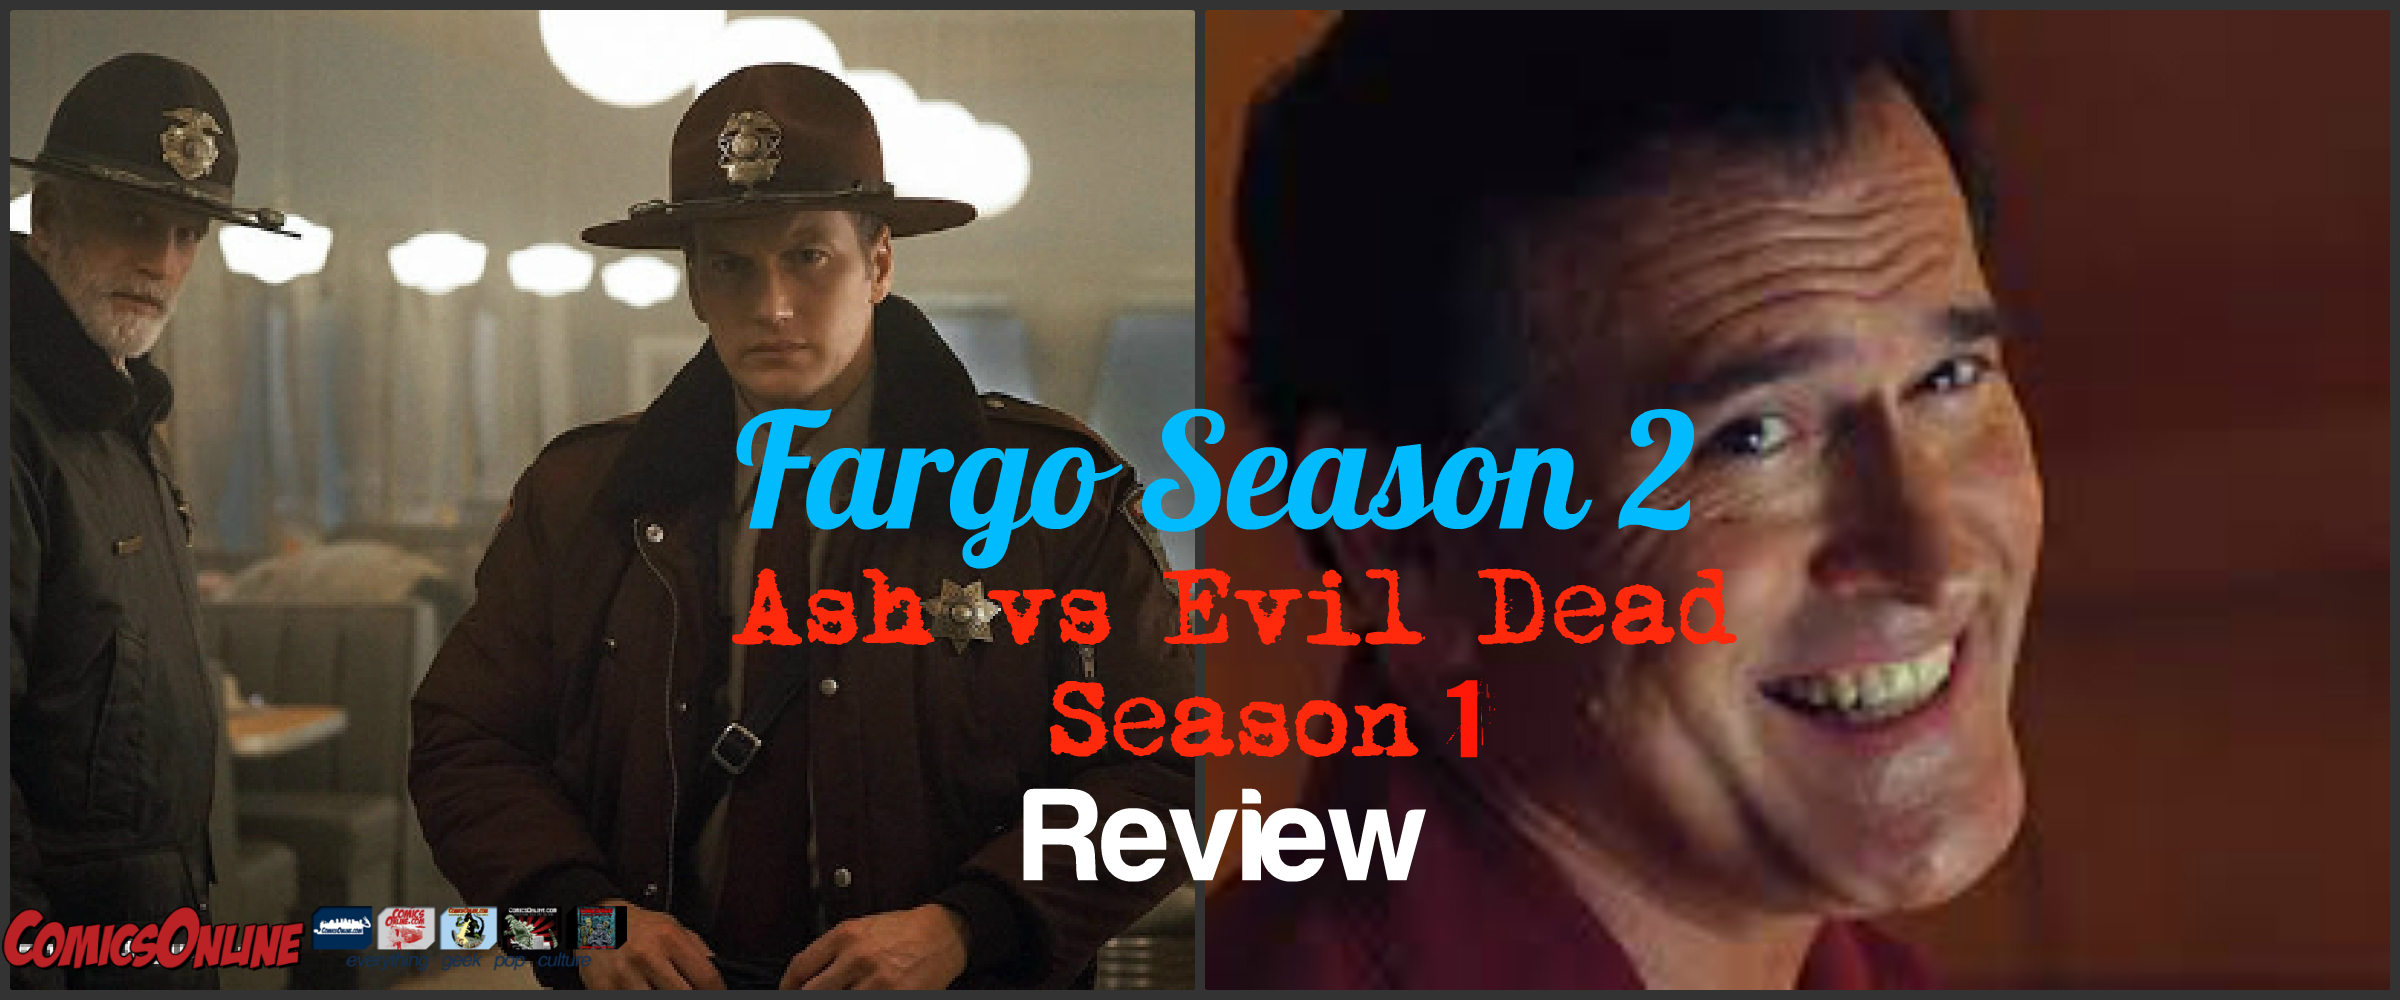 Ash vs Evil Dead & Fargo Review! The Bruce Campbell Connection